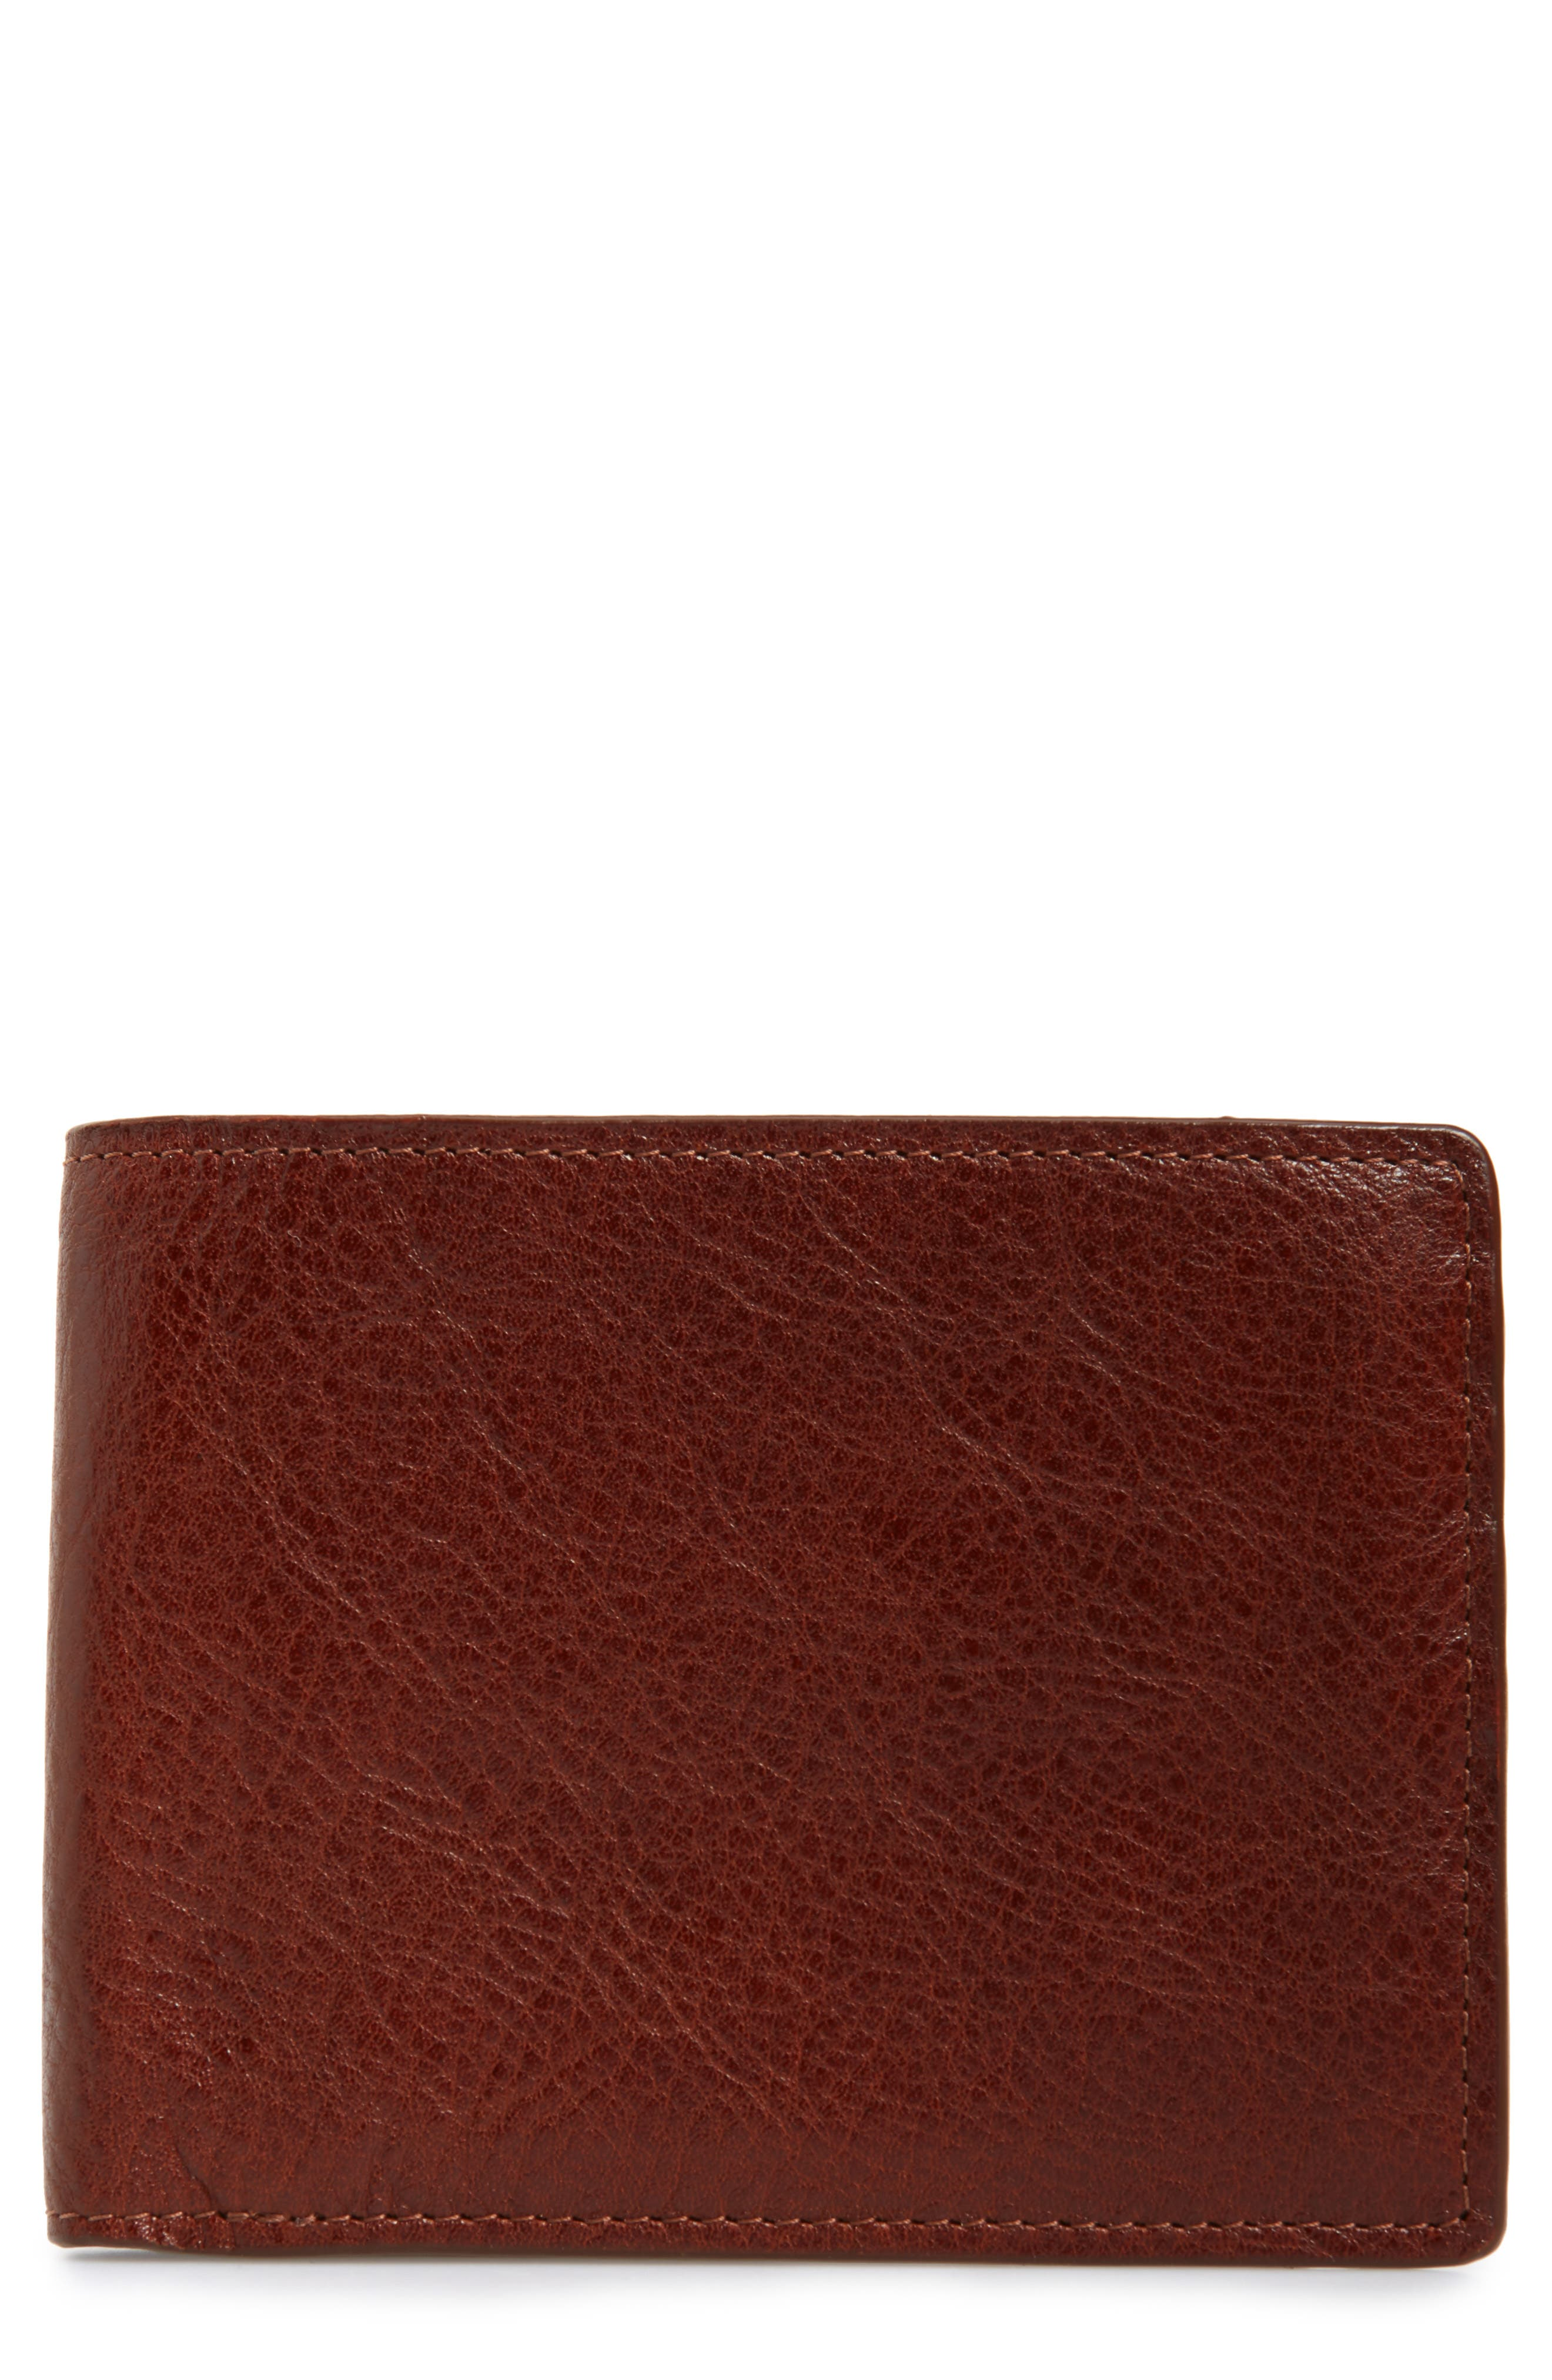 Richmond Leather Wallet,                             Main thumbnail 1, color,                             BROWN HENNA